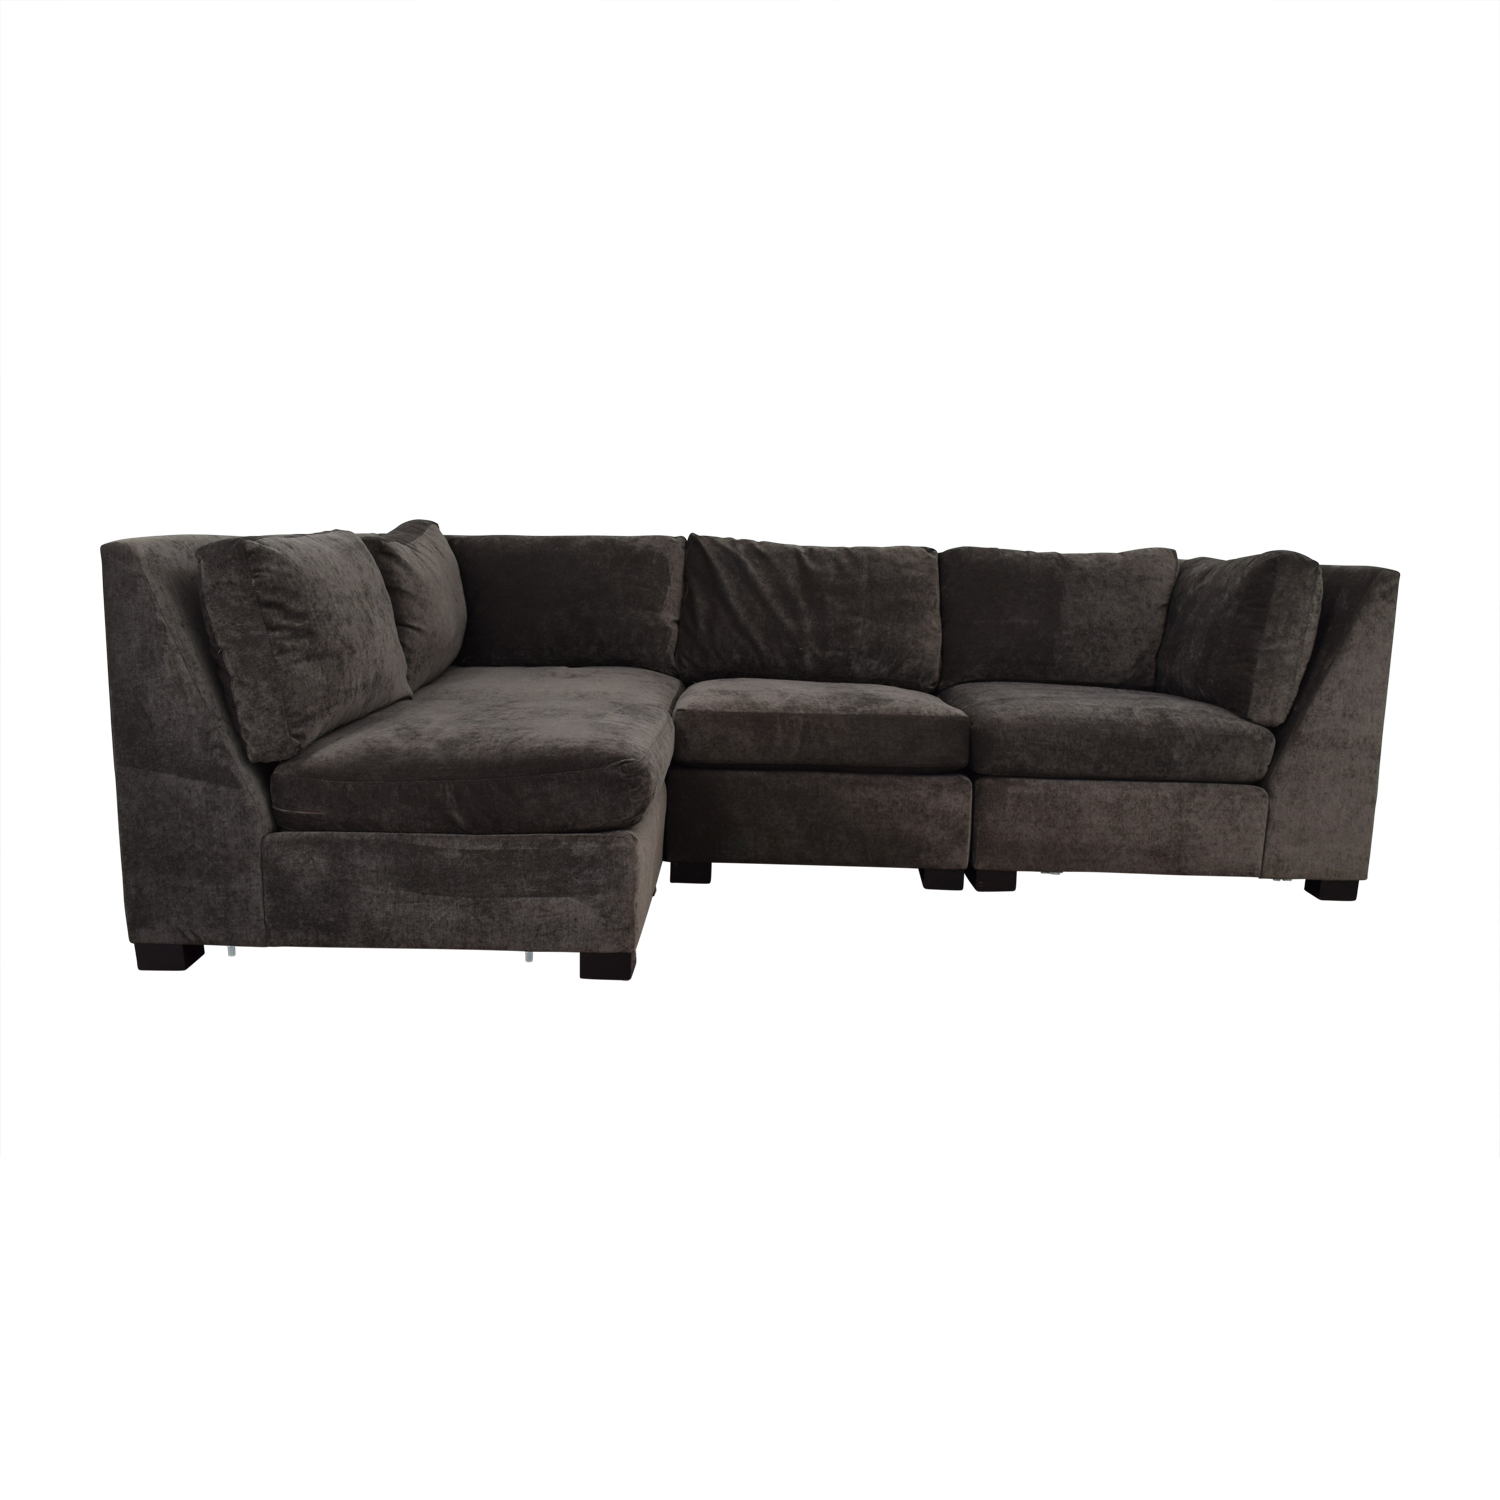 sofas couch with chaise and grey set couches on sofa perfect sectional